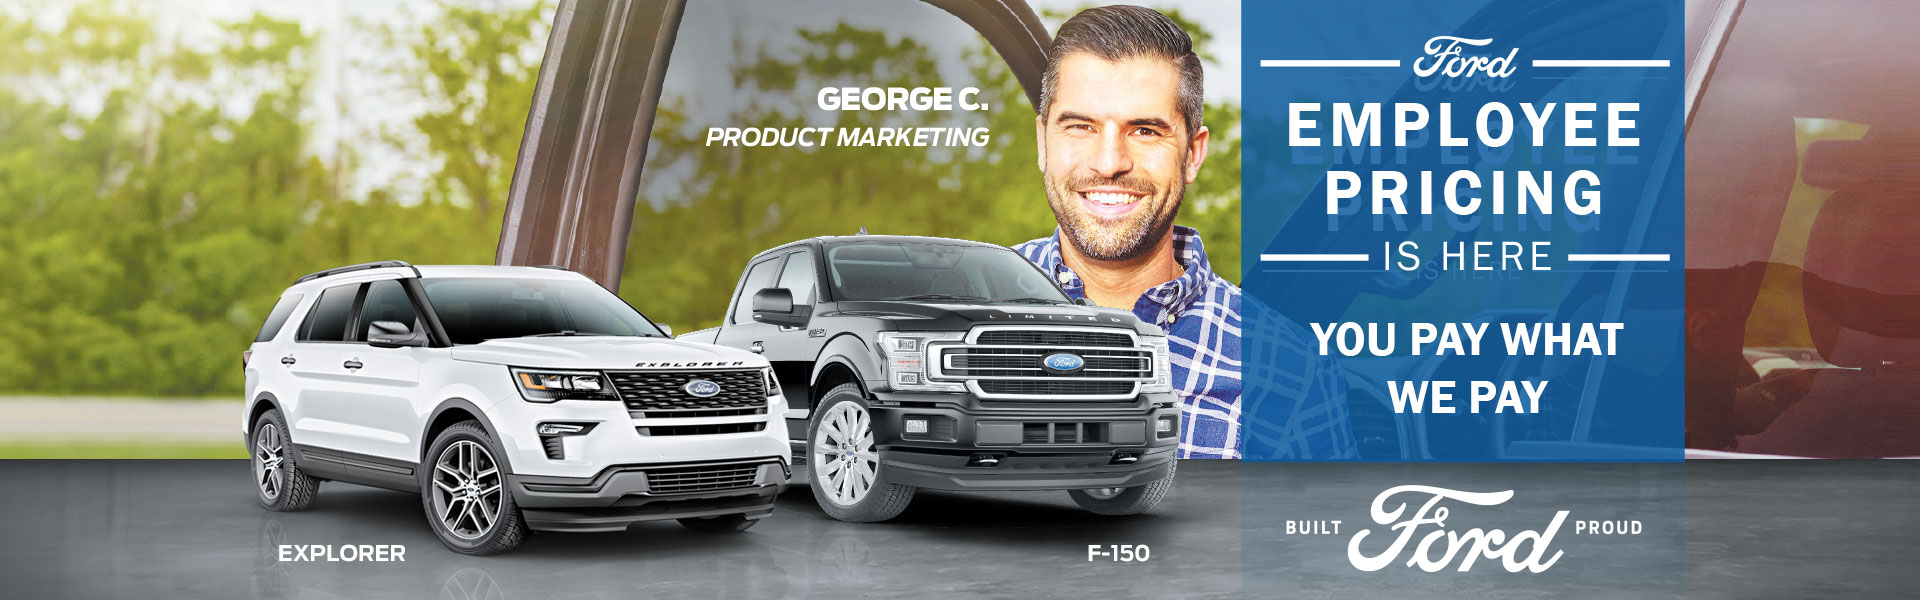 Ford Employee Pricing Sales Event F-150s & Explorer